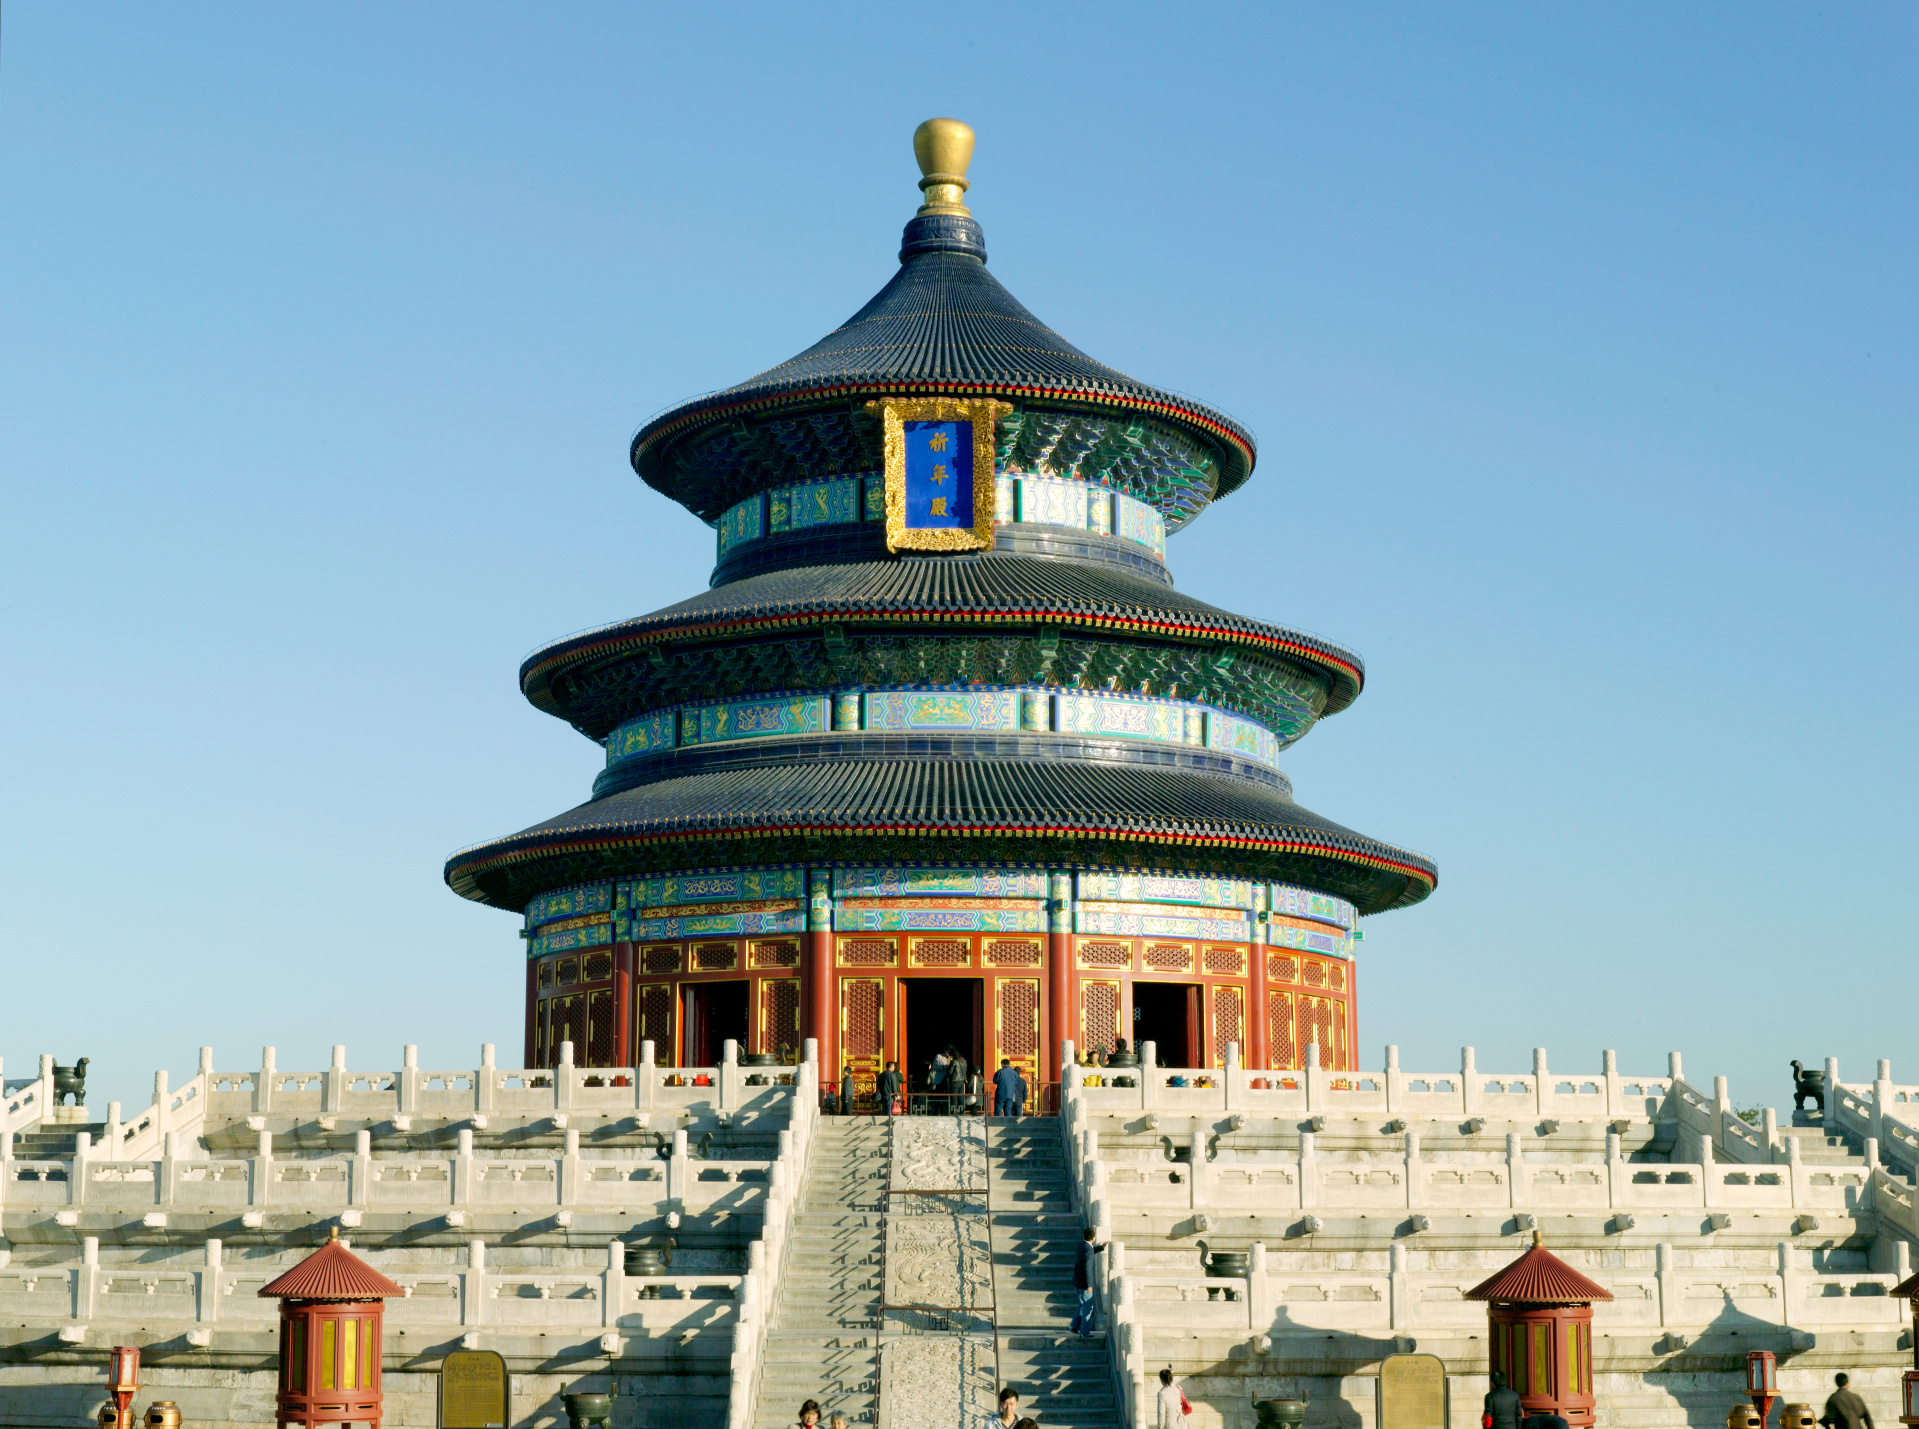 BEIJING, XI'AN, SHANGHAI, HANGZHOU   A luxury vacation through Imperial China, tailored to history lovers and culture aficionados. You will further experience the heritage of China by staying at Amanyangyun Shanghai and Aman Summer Palace in Beijing.